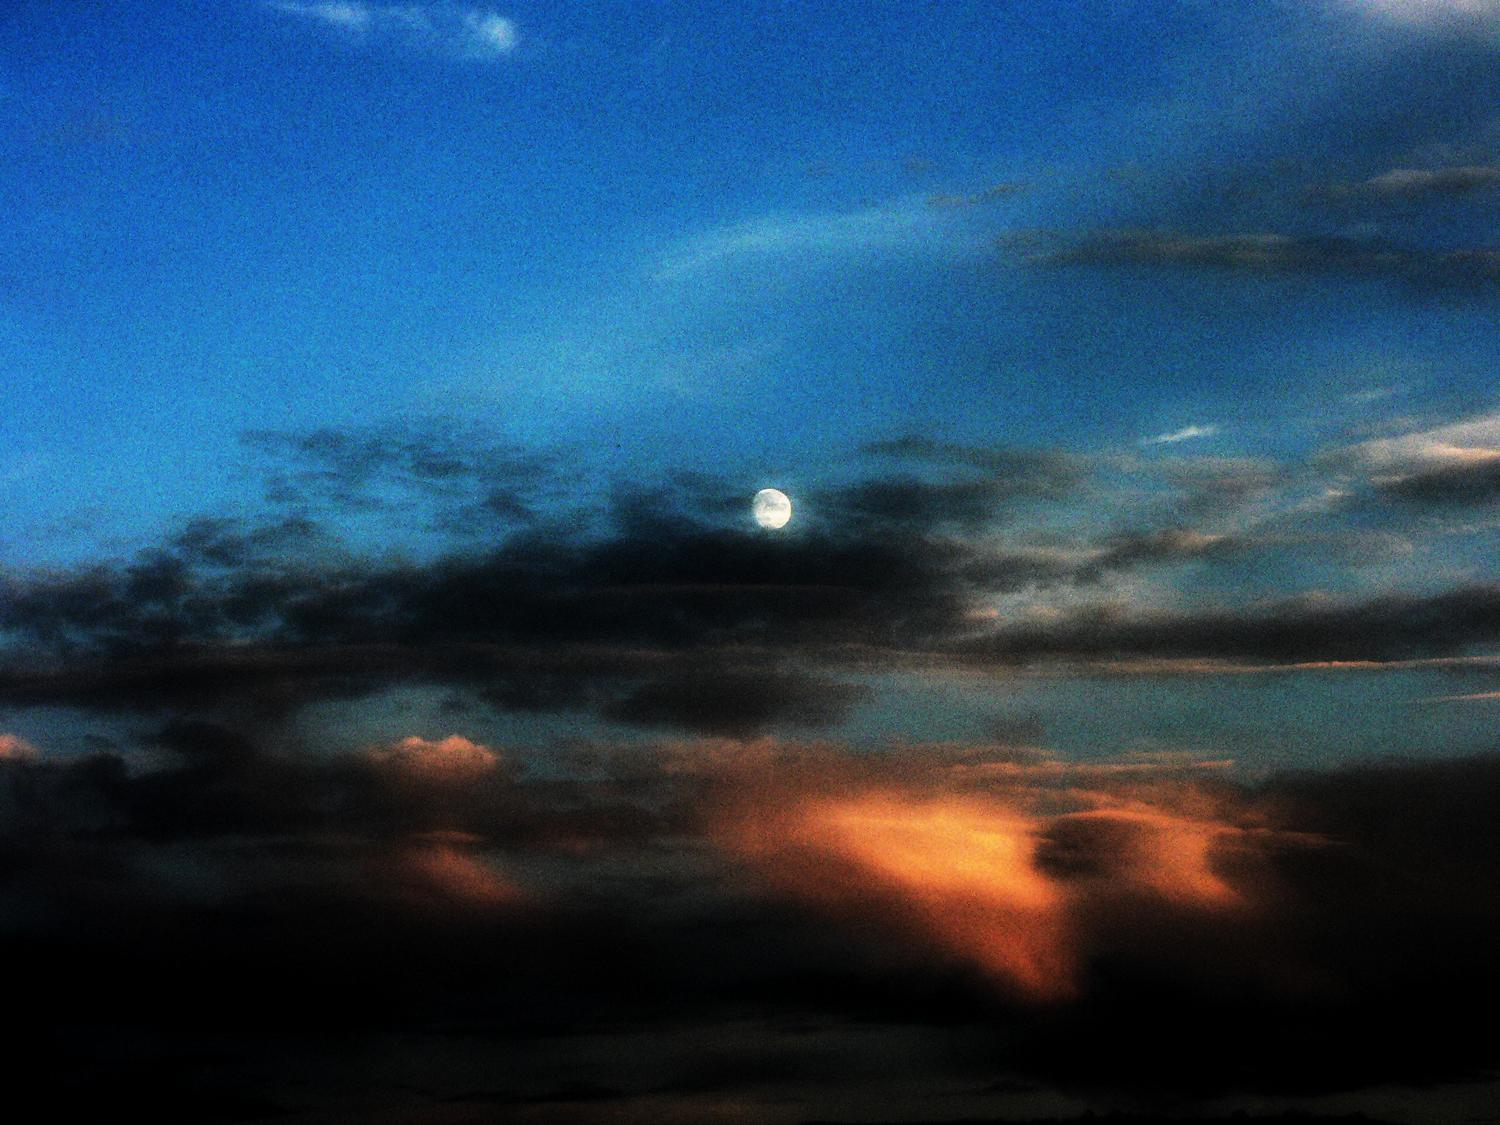 Moon against orange clouds - A tribute to the Apollo 11 astronauts - Tony Karp, design, art, photography, techno-impressionist, techno-impressionism, aerial photography , drone , drones , dji , mavic pro , video , 3D printing - Books -